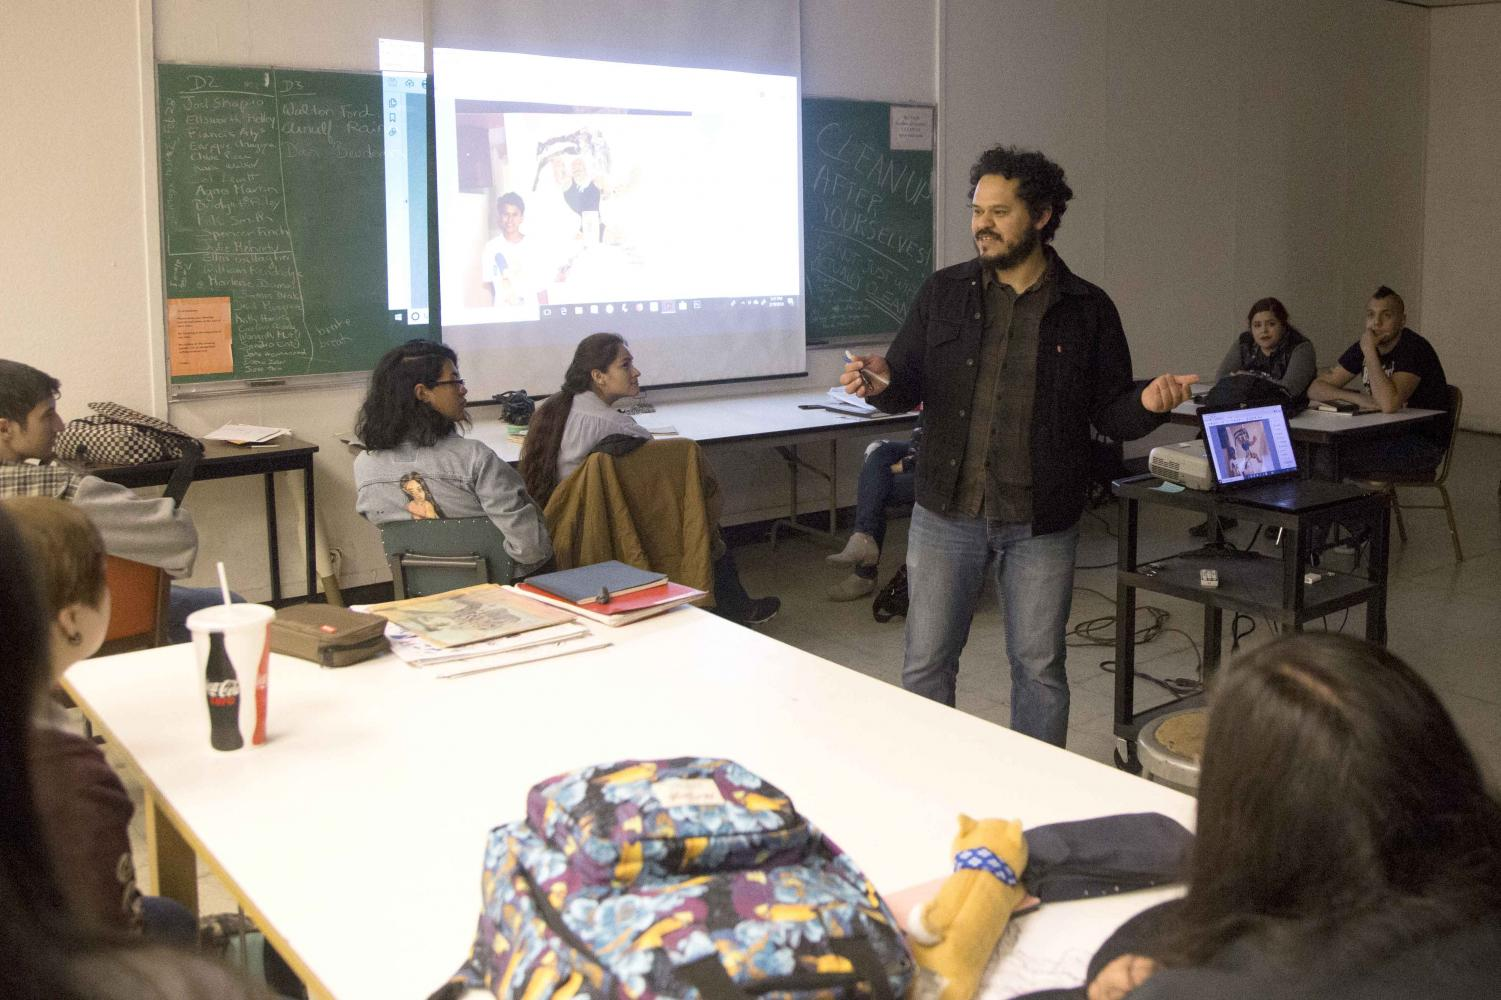 Raul Gonzalez, a DoArt alumnus, speaks to drawing students. Gonzalez also hosted one-on-one critiques.